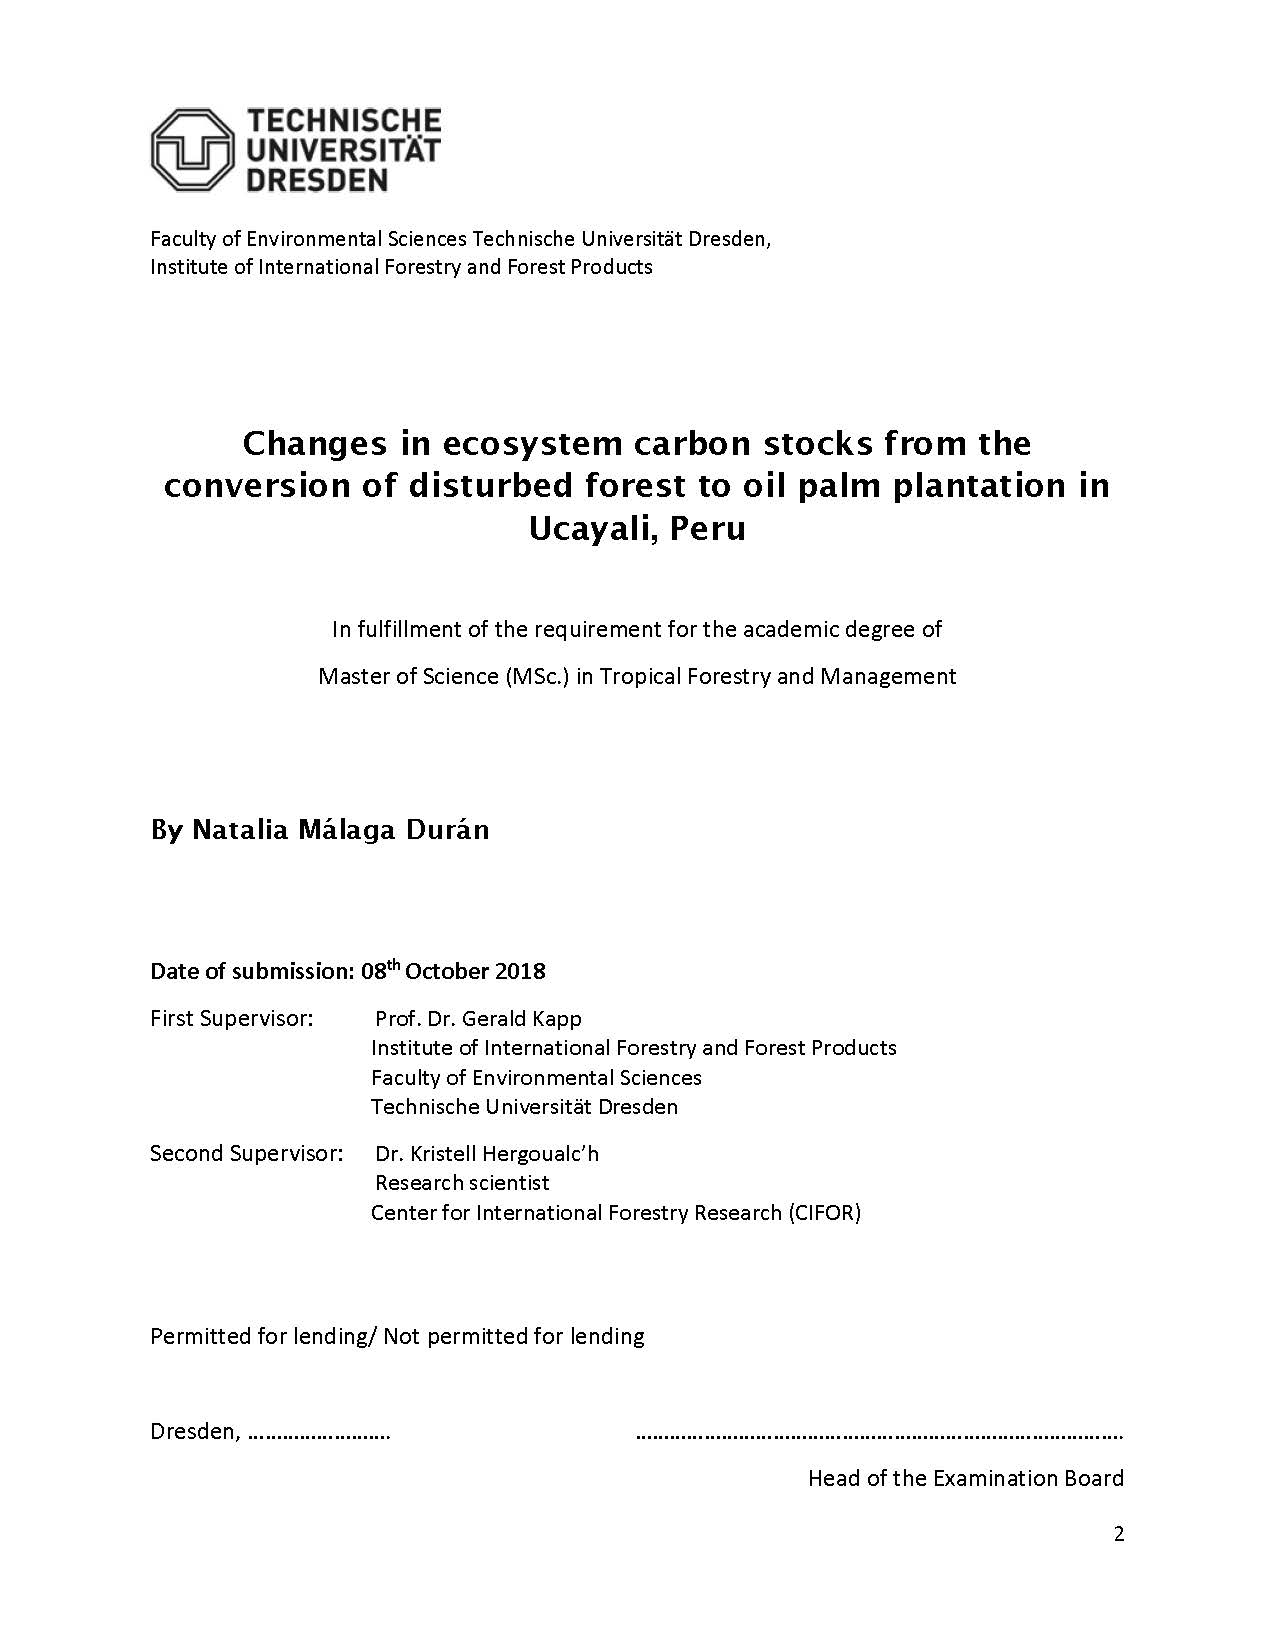 Changes in ecosystem carbon stocks from the conversion of disturbed forest to oil palm plantation in Ucayali, Peru